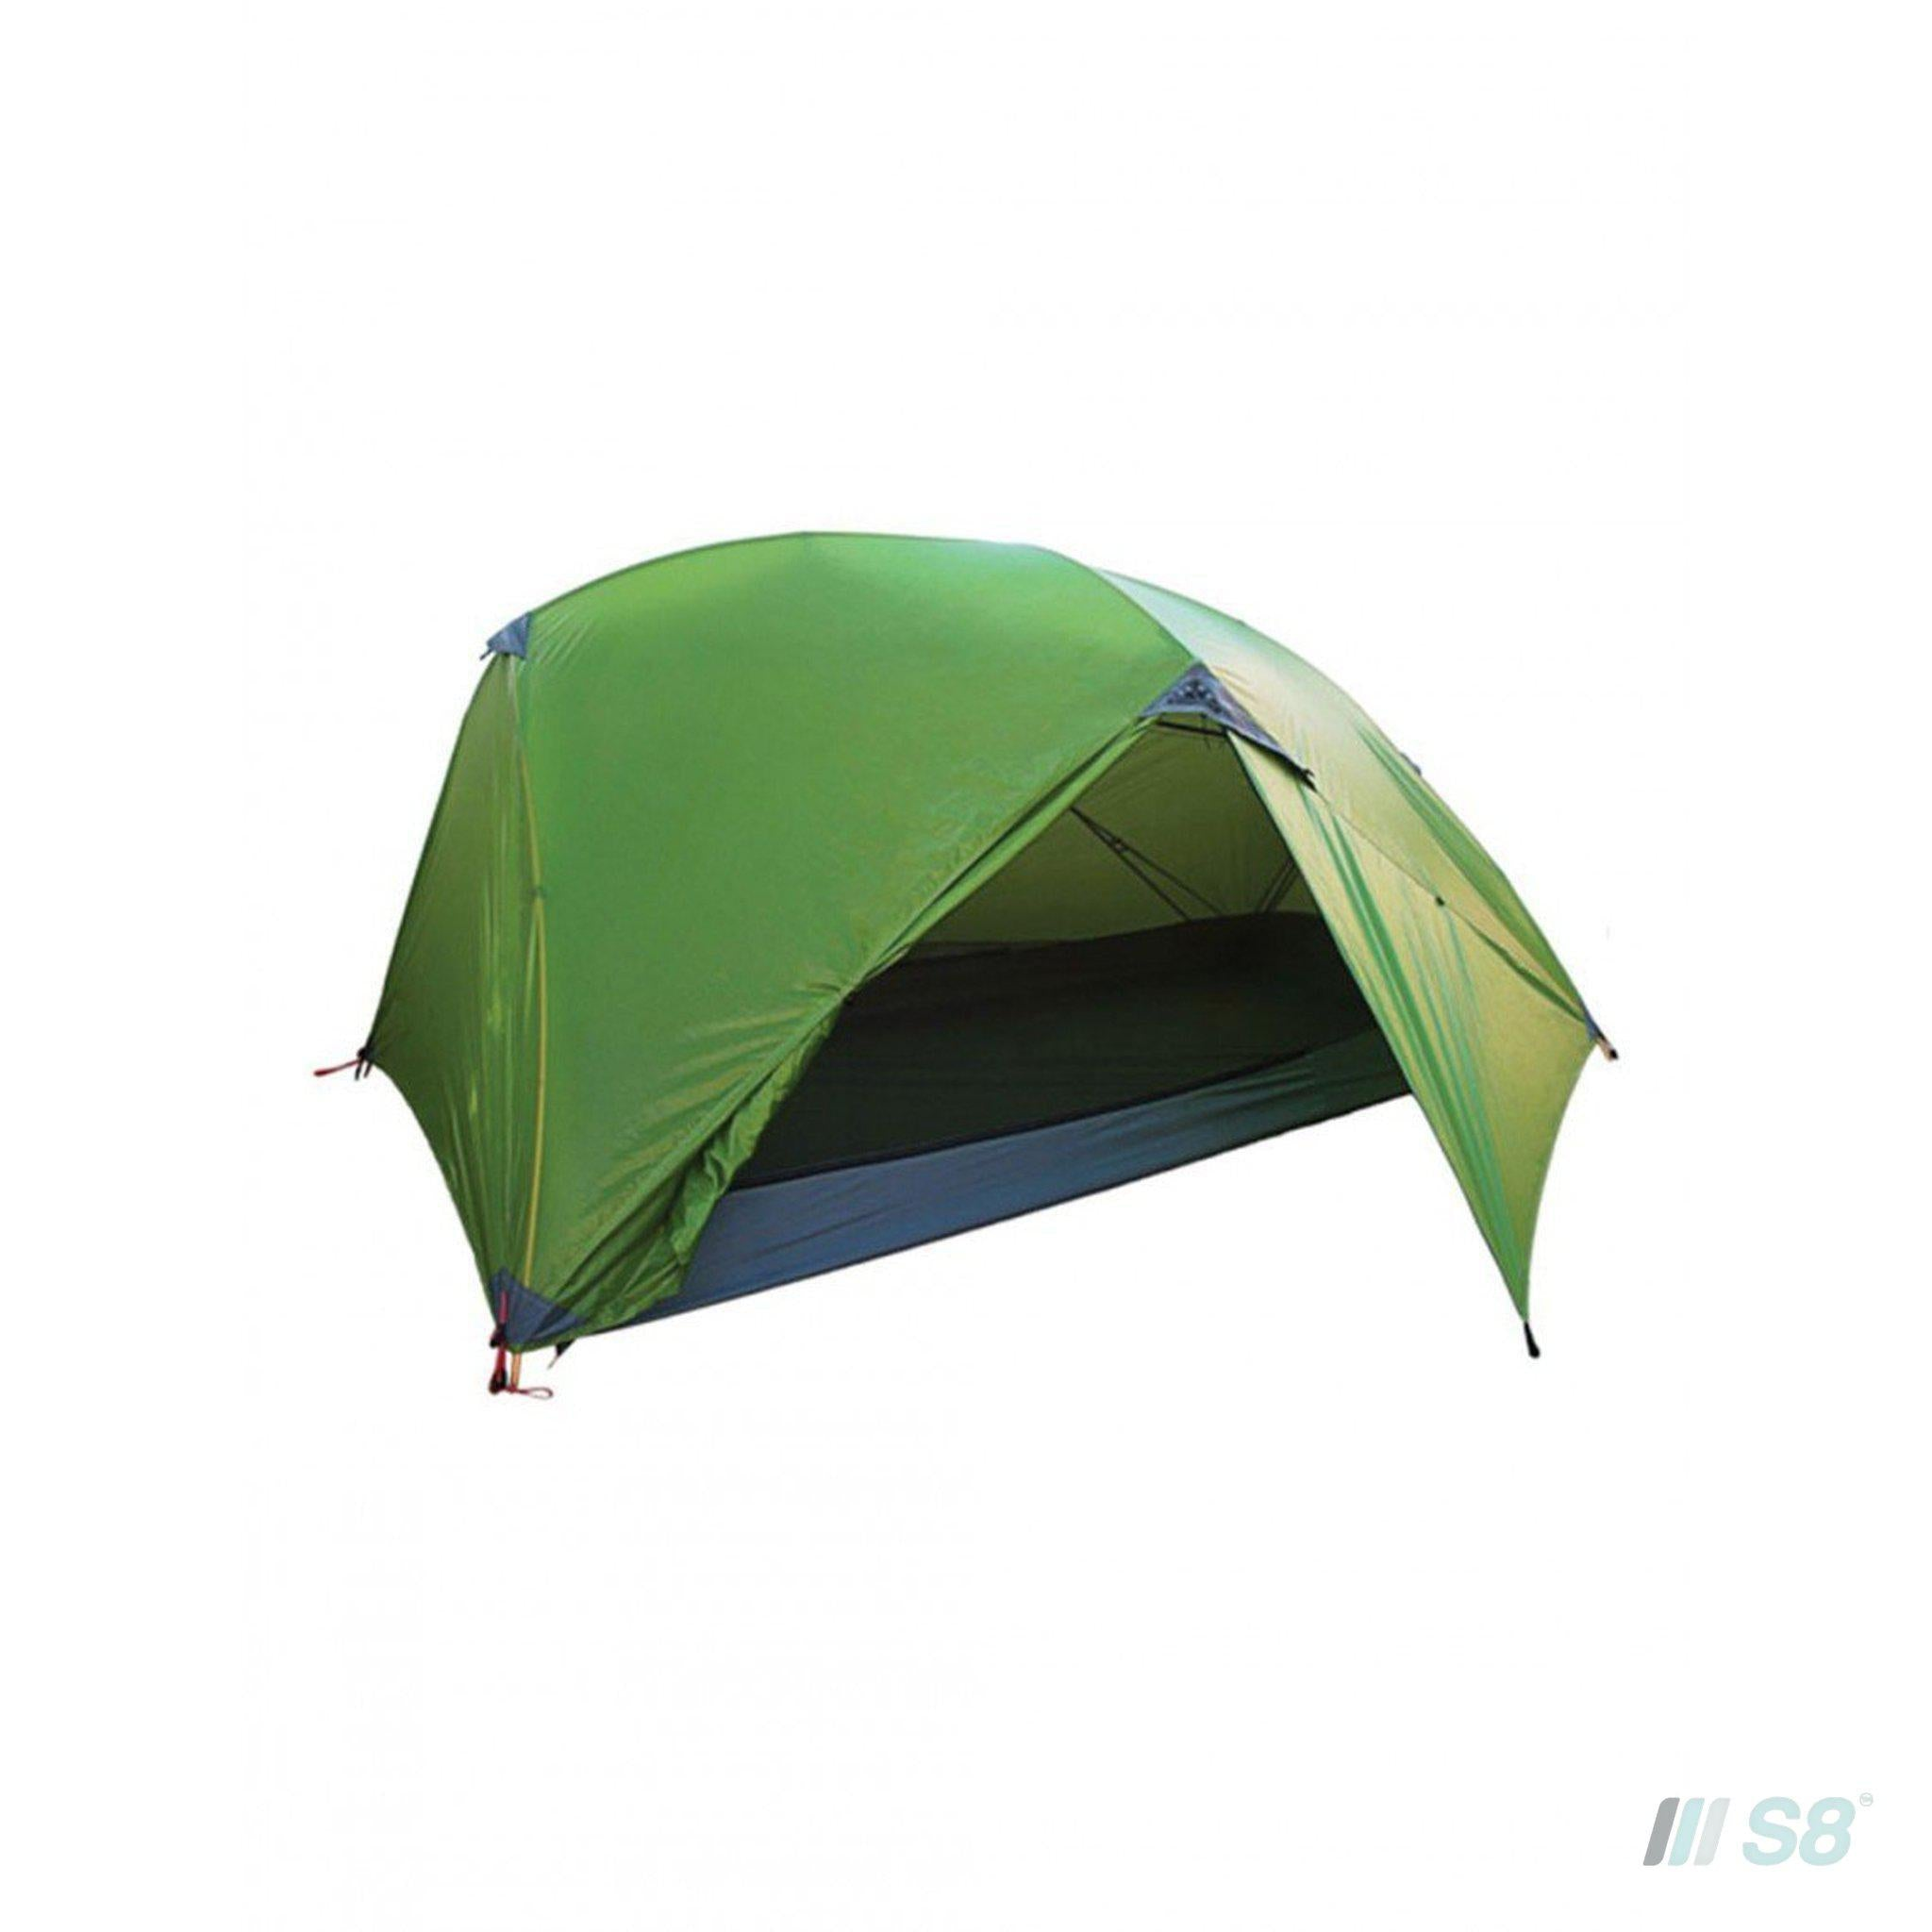 Wilderness Equipment Space 2 (Mesh Inner)-Wilderness Equipment-S8 Products Group